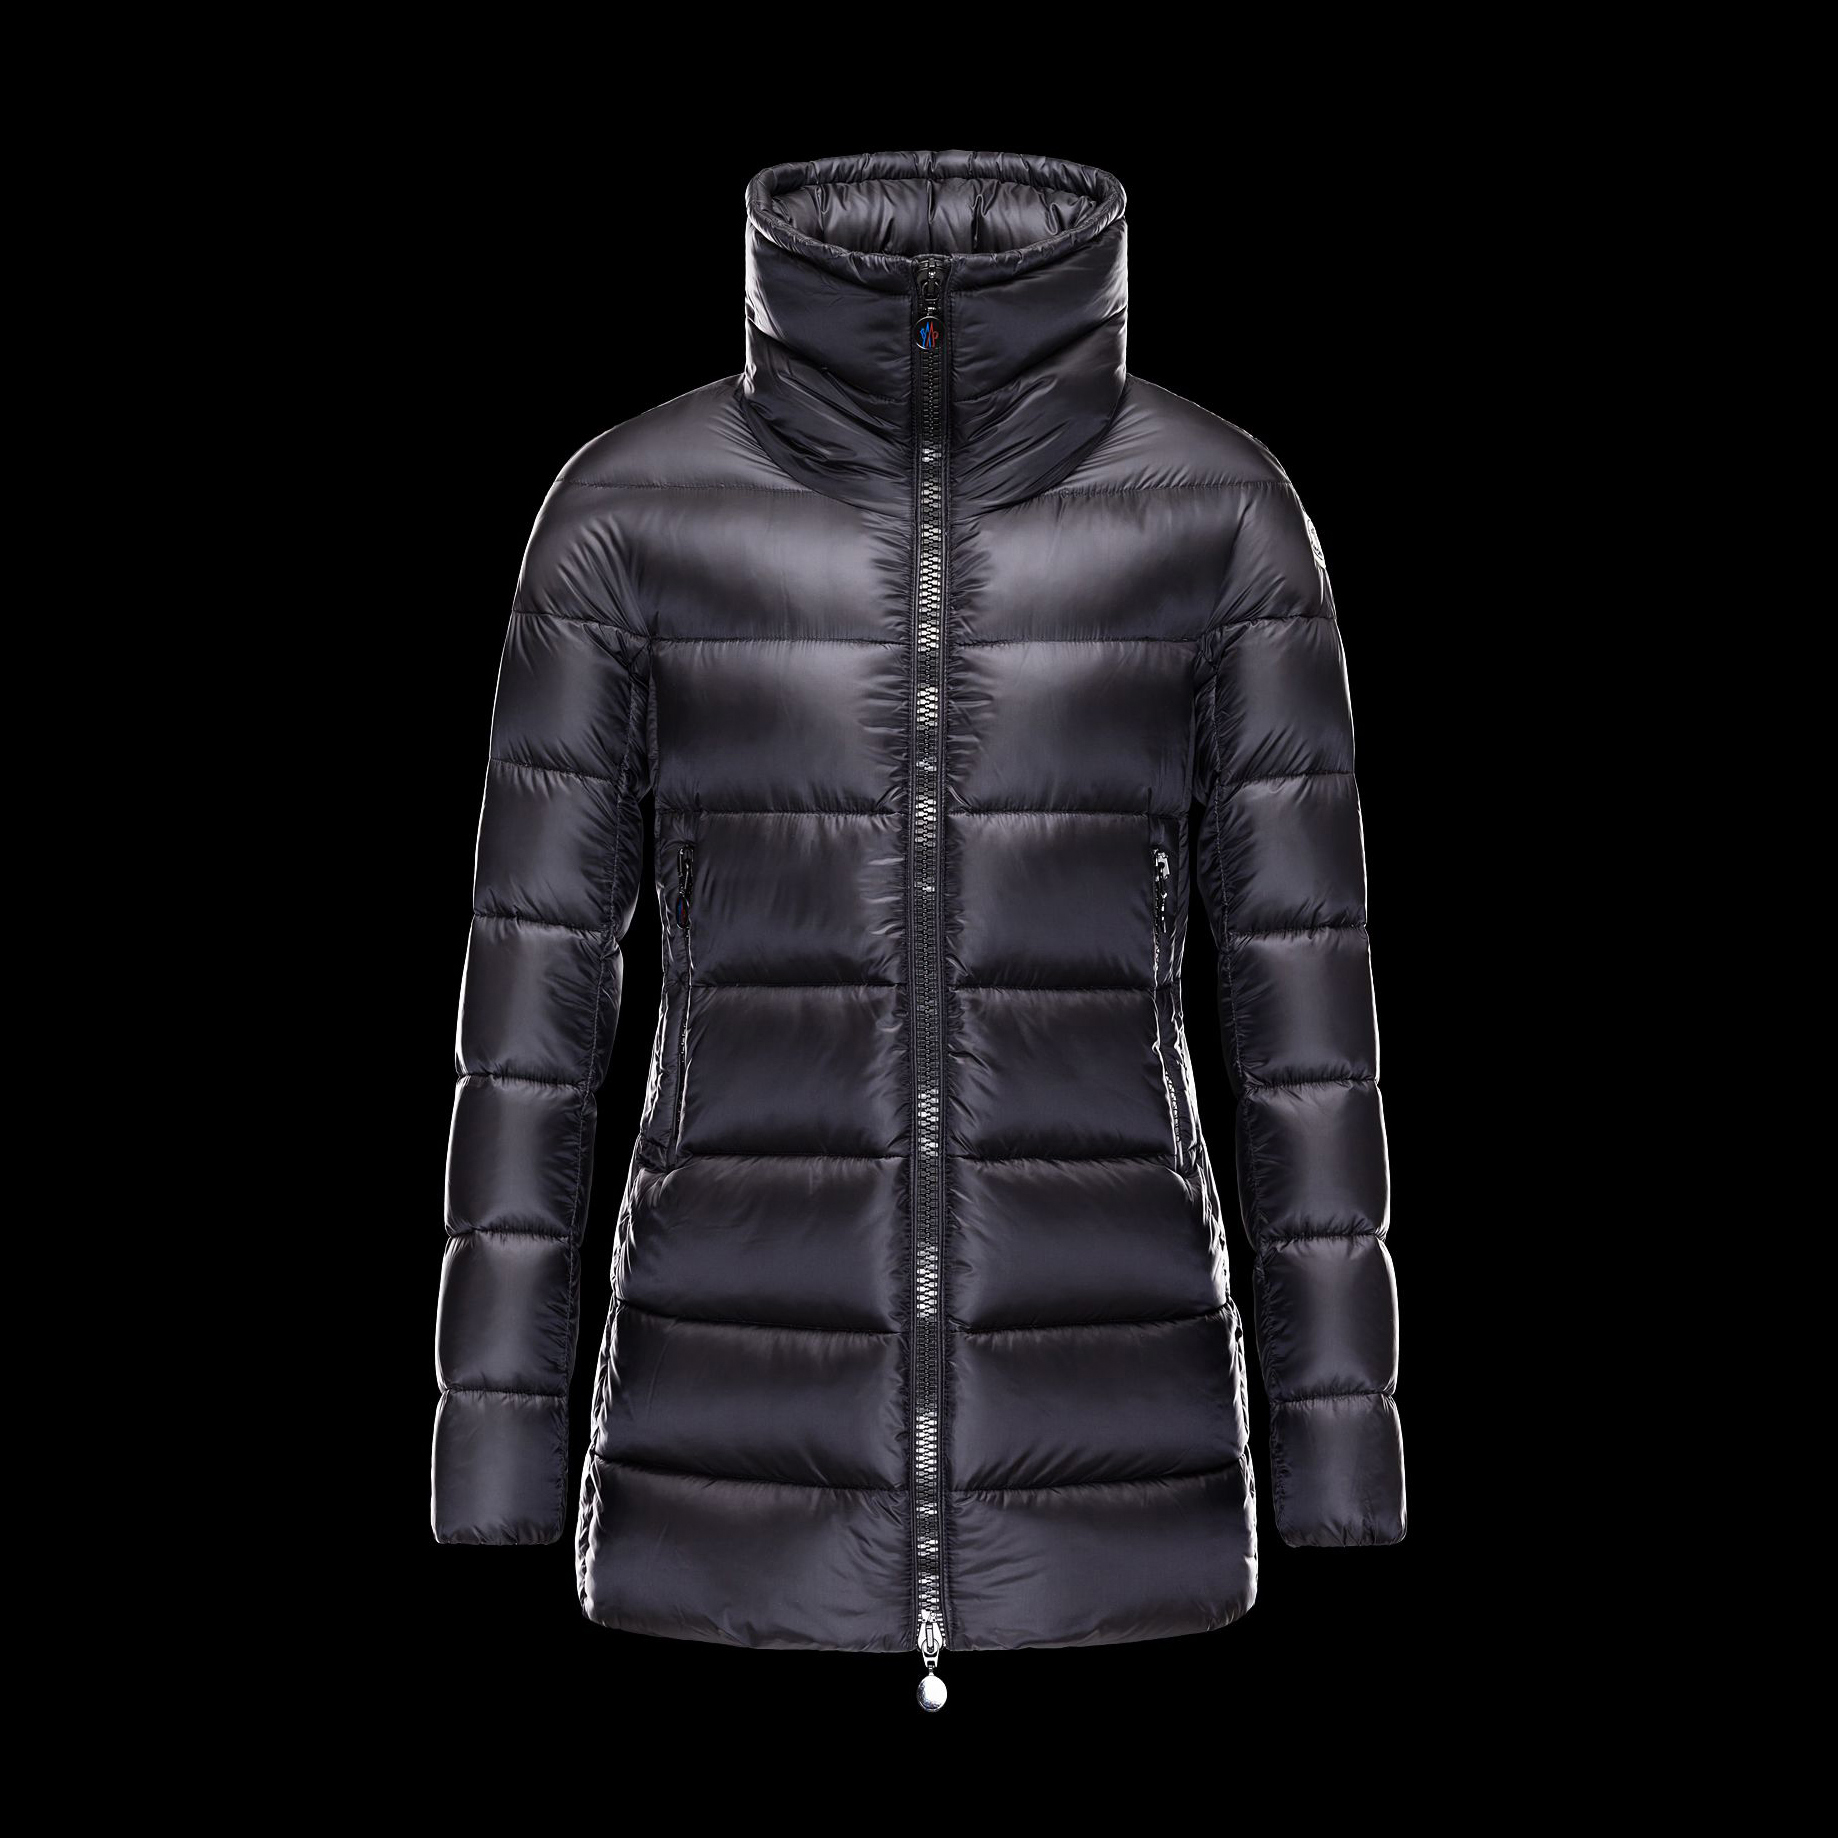 Cheap Moncler Long Coats For Women With Simple High Collar Black MC1335 Sale